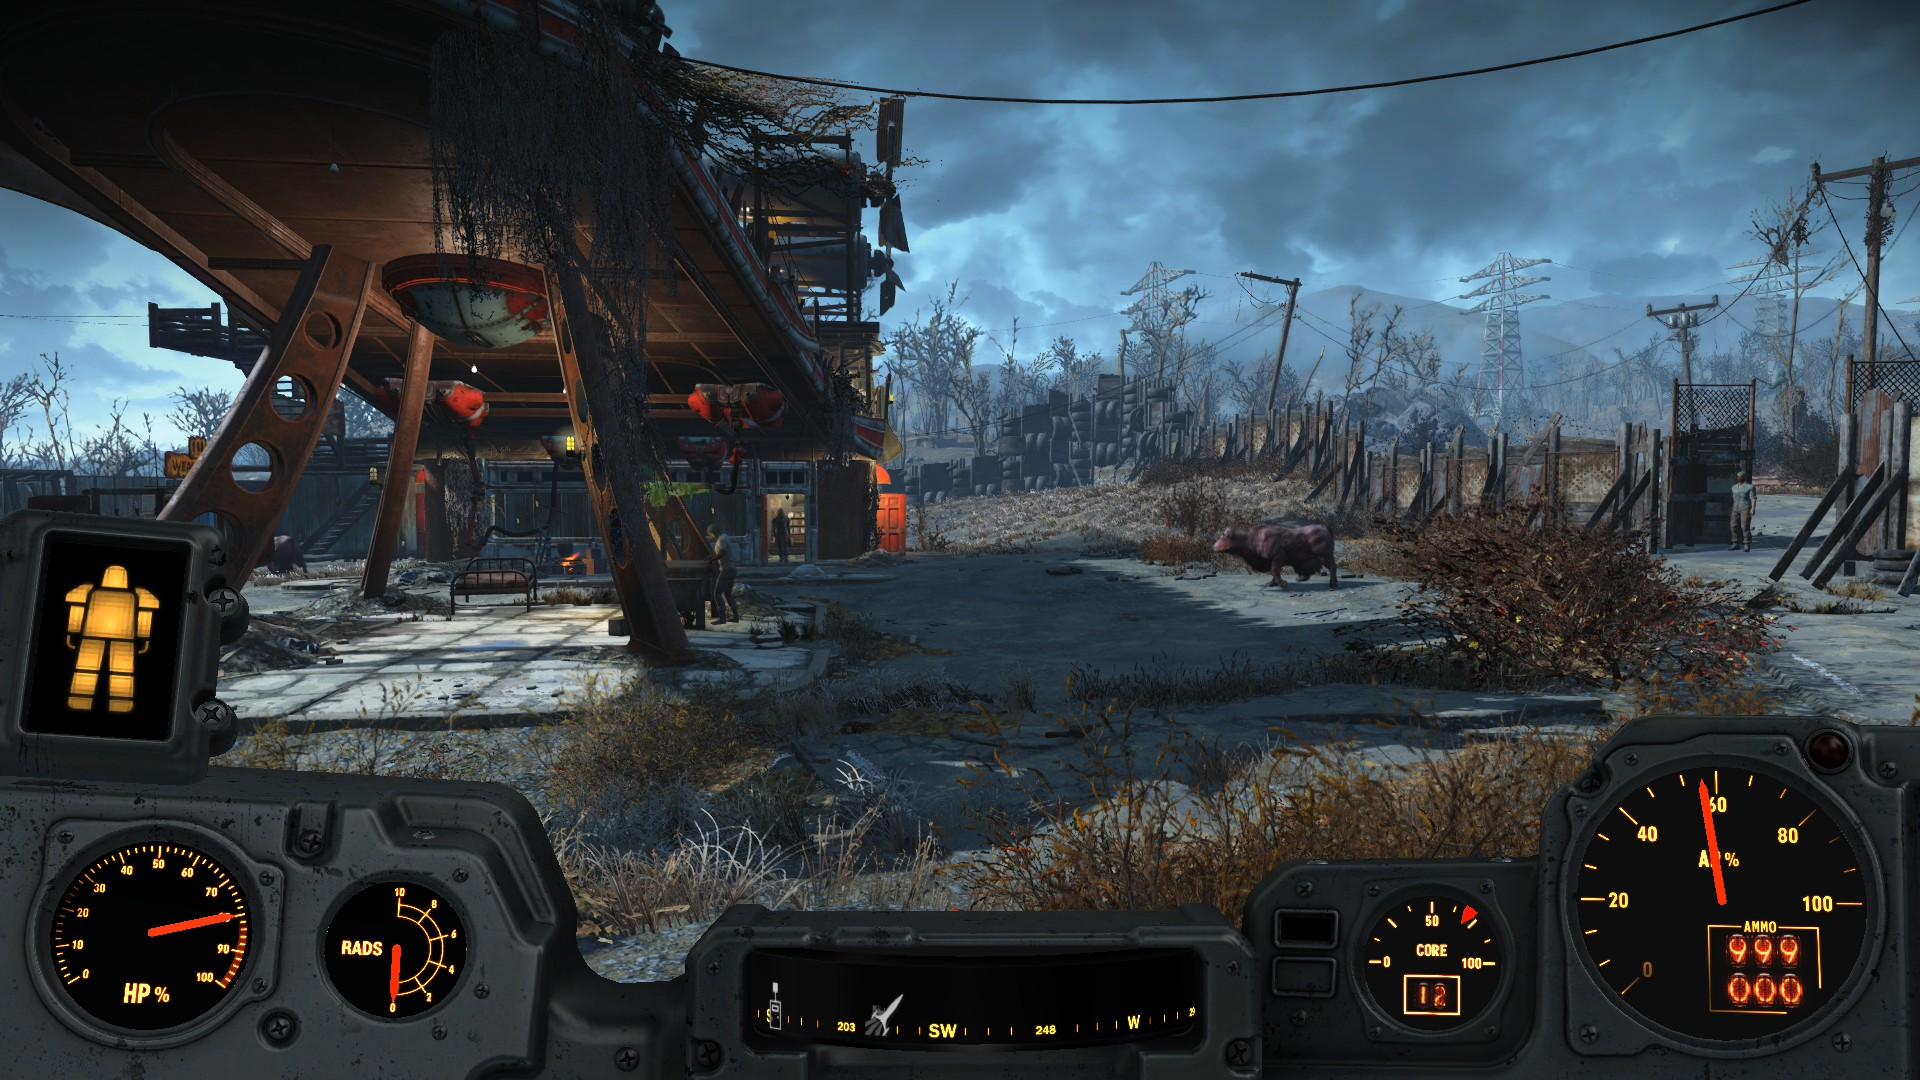 Power Armor Hud - No Transparency at Fallout 4 Nexus - Mods